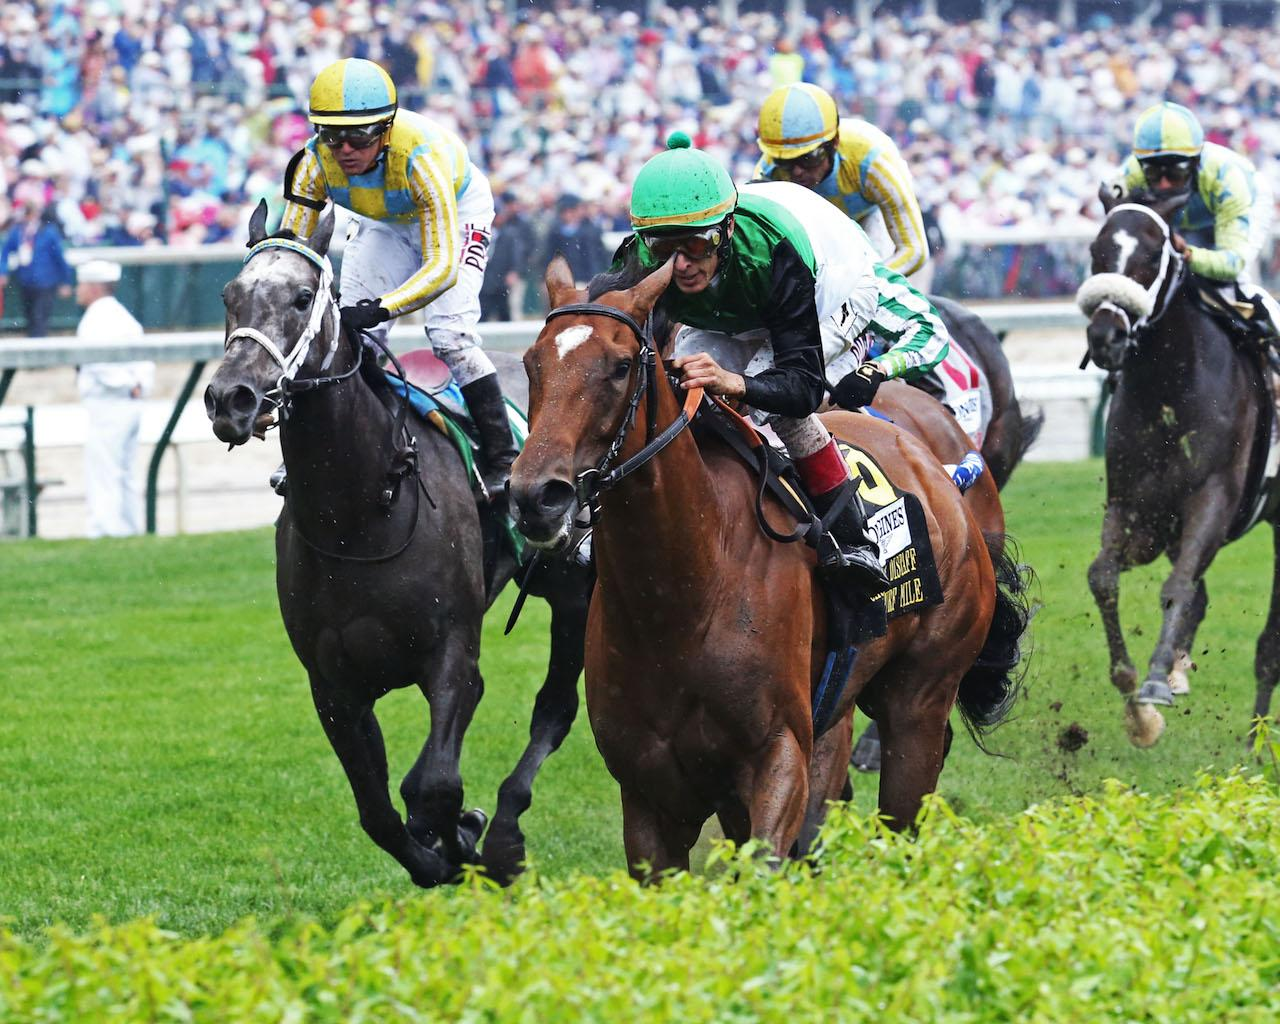 PROCTOR'S LEDGE - The Longines Churchill Distaff Turf Mile G2 - 33rd Running - 05-05-18 - R07 - CD - Inside Finish 02